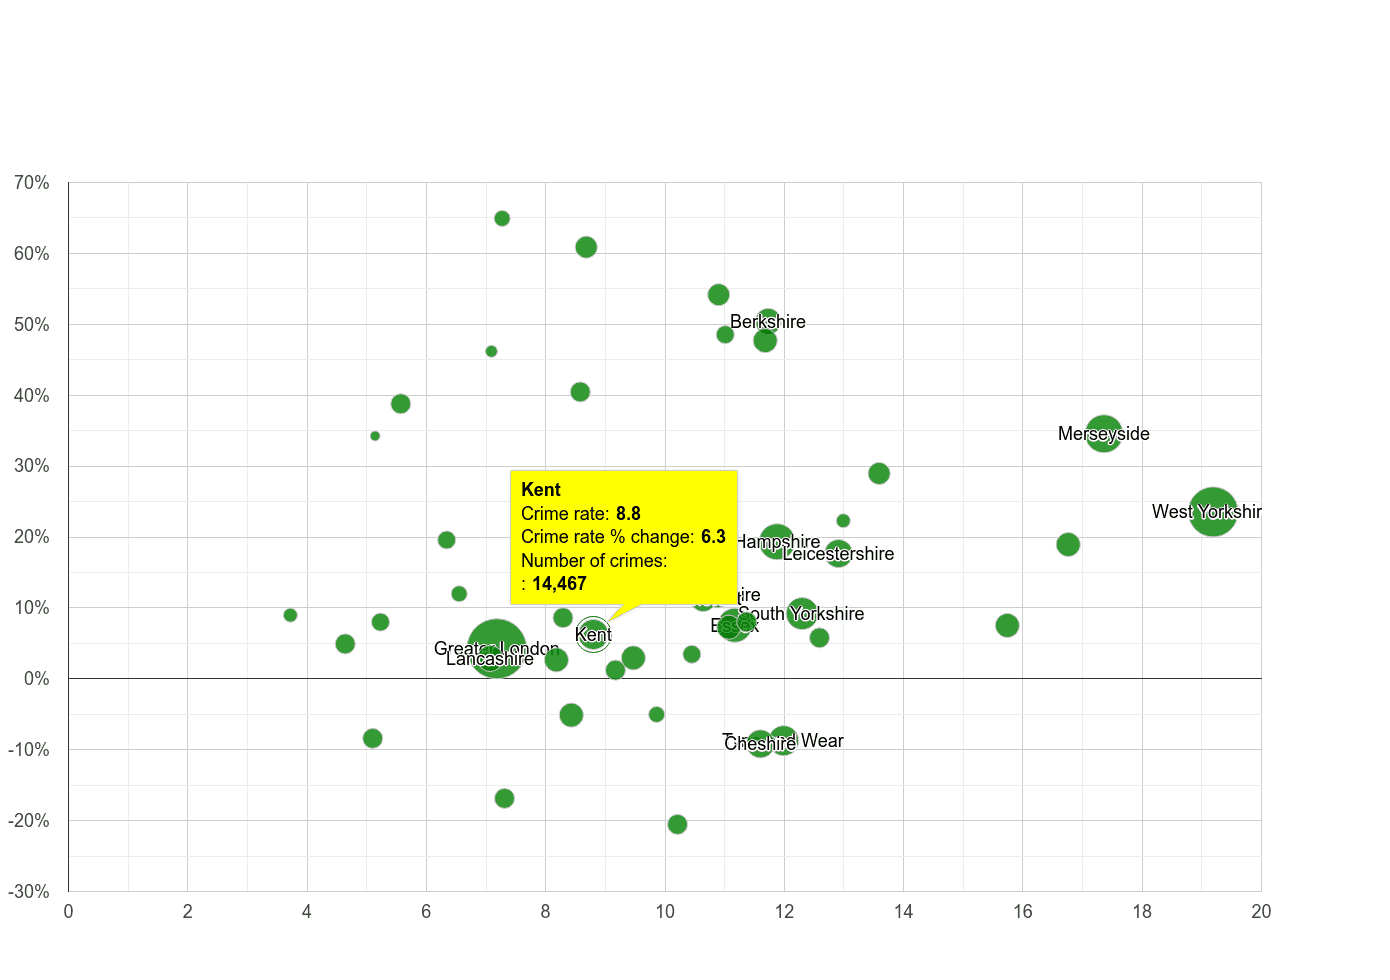 Kent public order crime rate compared to other counties